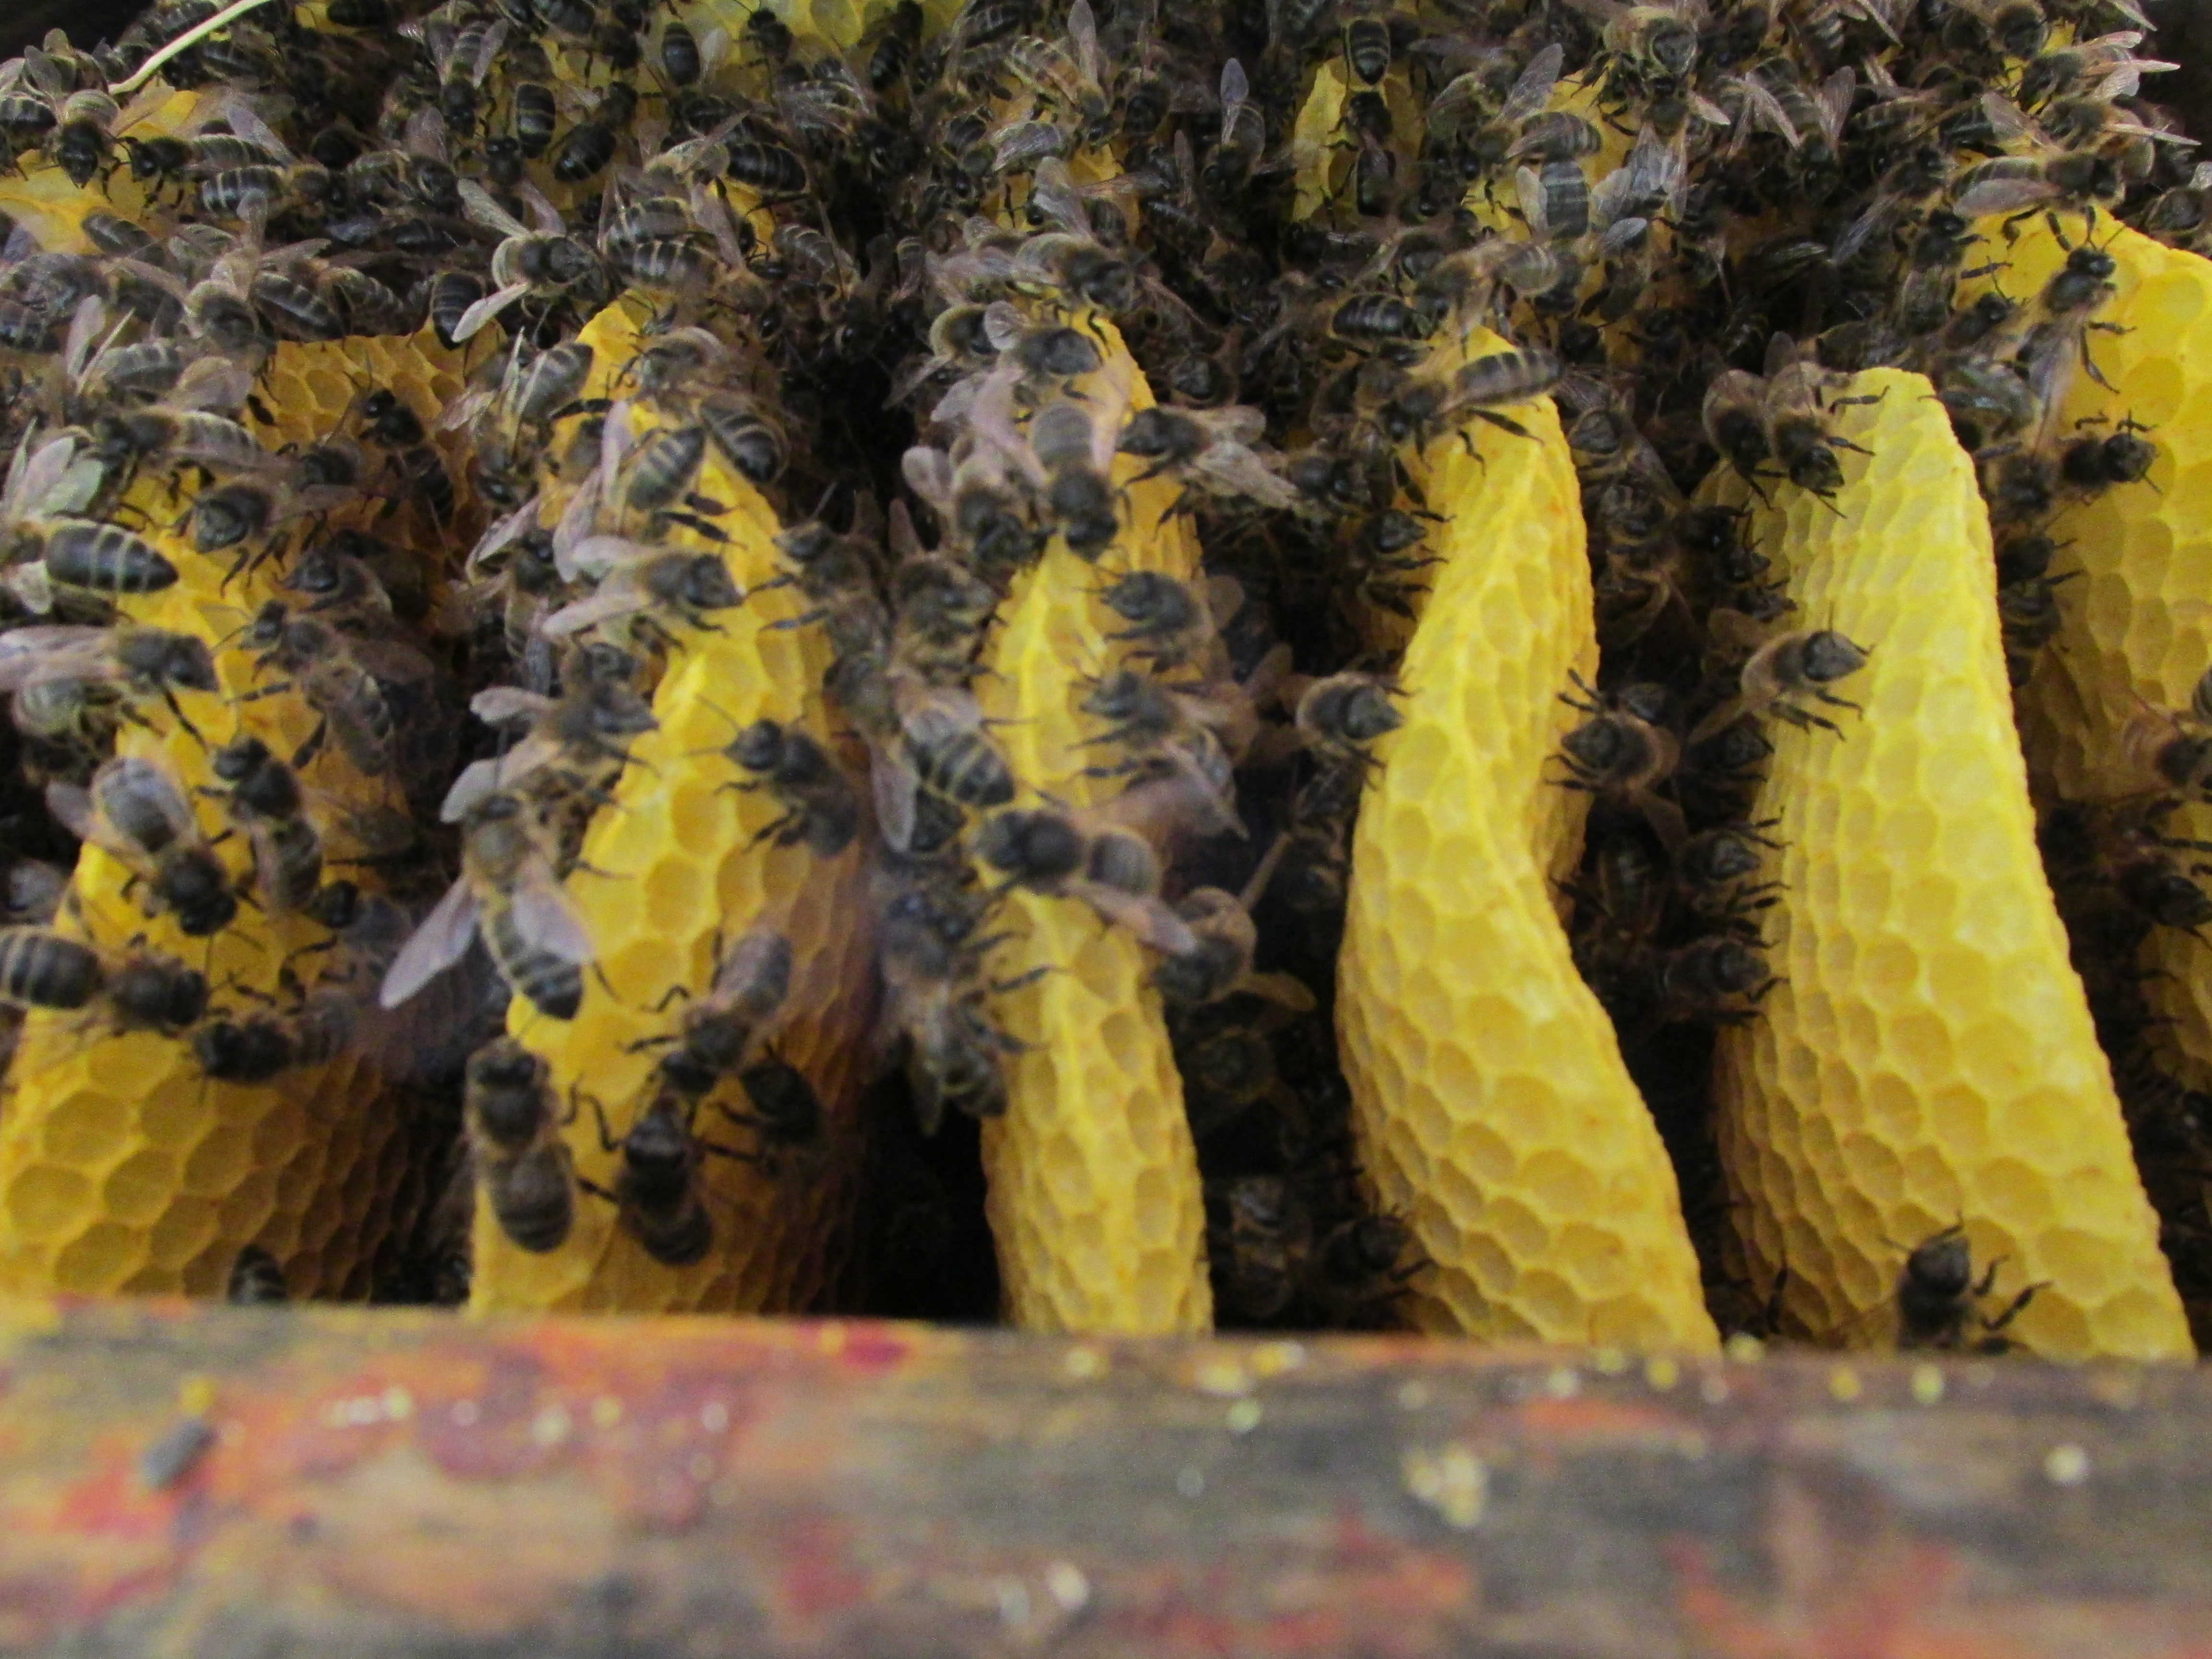 Warre Beekeeping Course (please check availability beforehand)